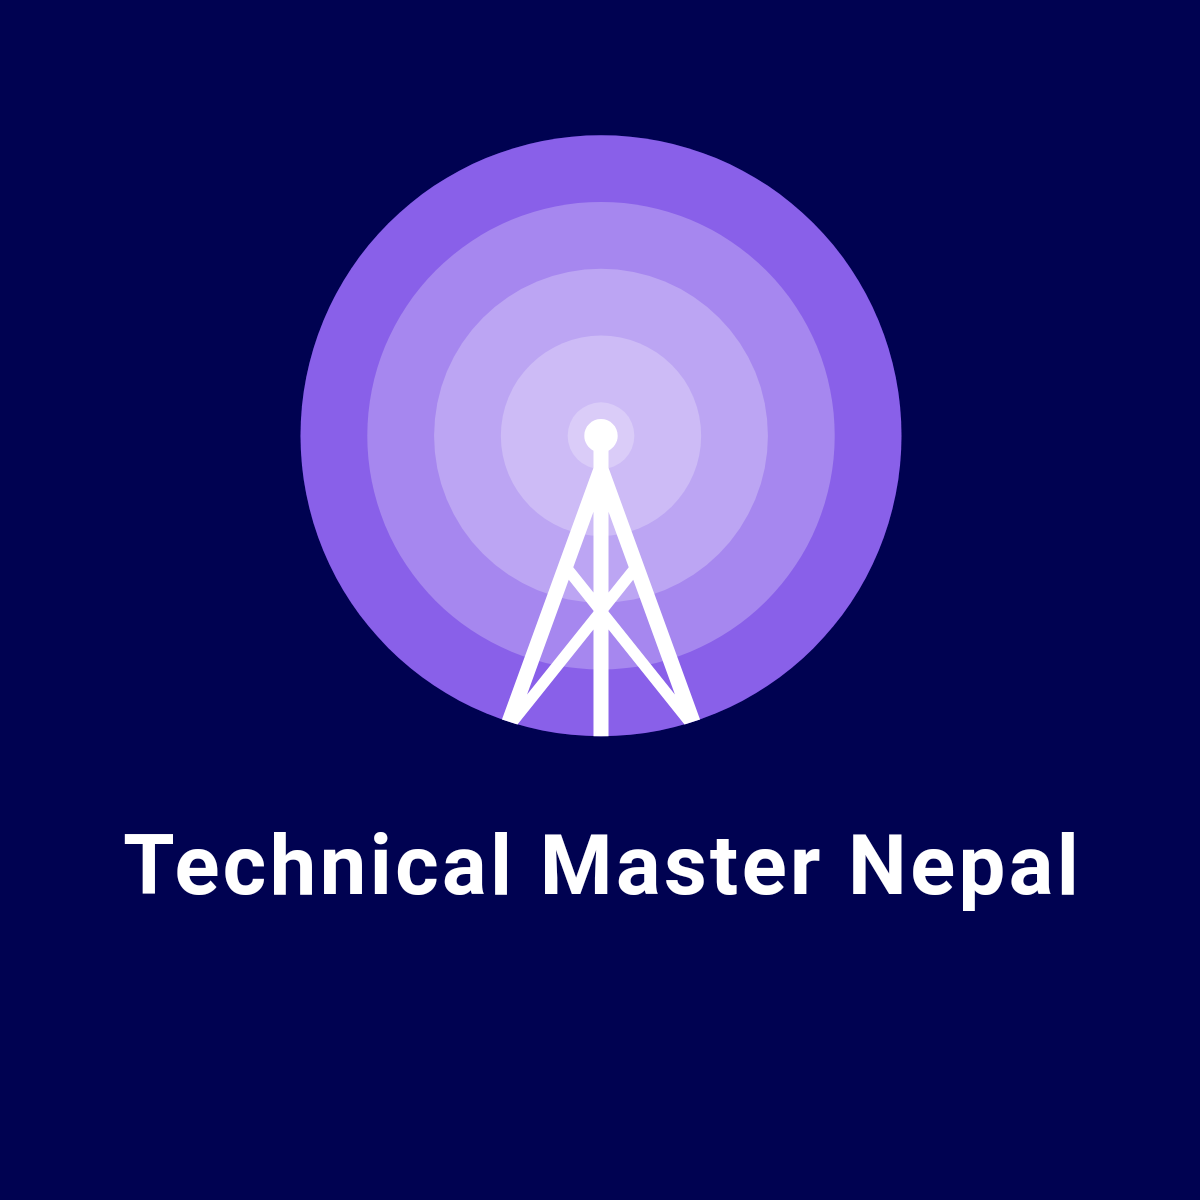 Technical Master Nepal logo